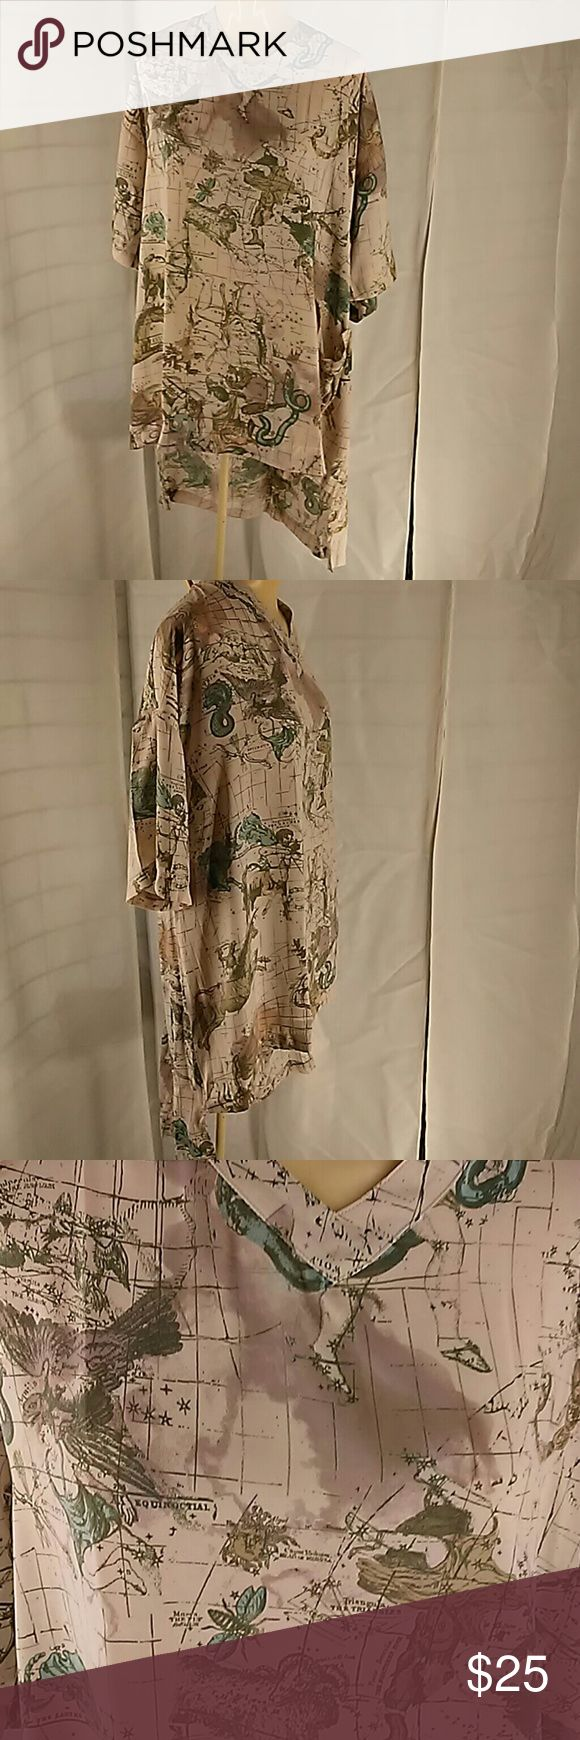 Melissa McCarthy Seven 7 TUNIC Constellations and Zodiac design. Uneven hem Long back hem shorter front. Muted colors of beige green and blue. Big shirt or large tunic with front left patch pocket. (If you watch SNL it's a Sean Spicer tunic).size 1x. Melissa McCarthy Tops Tunics